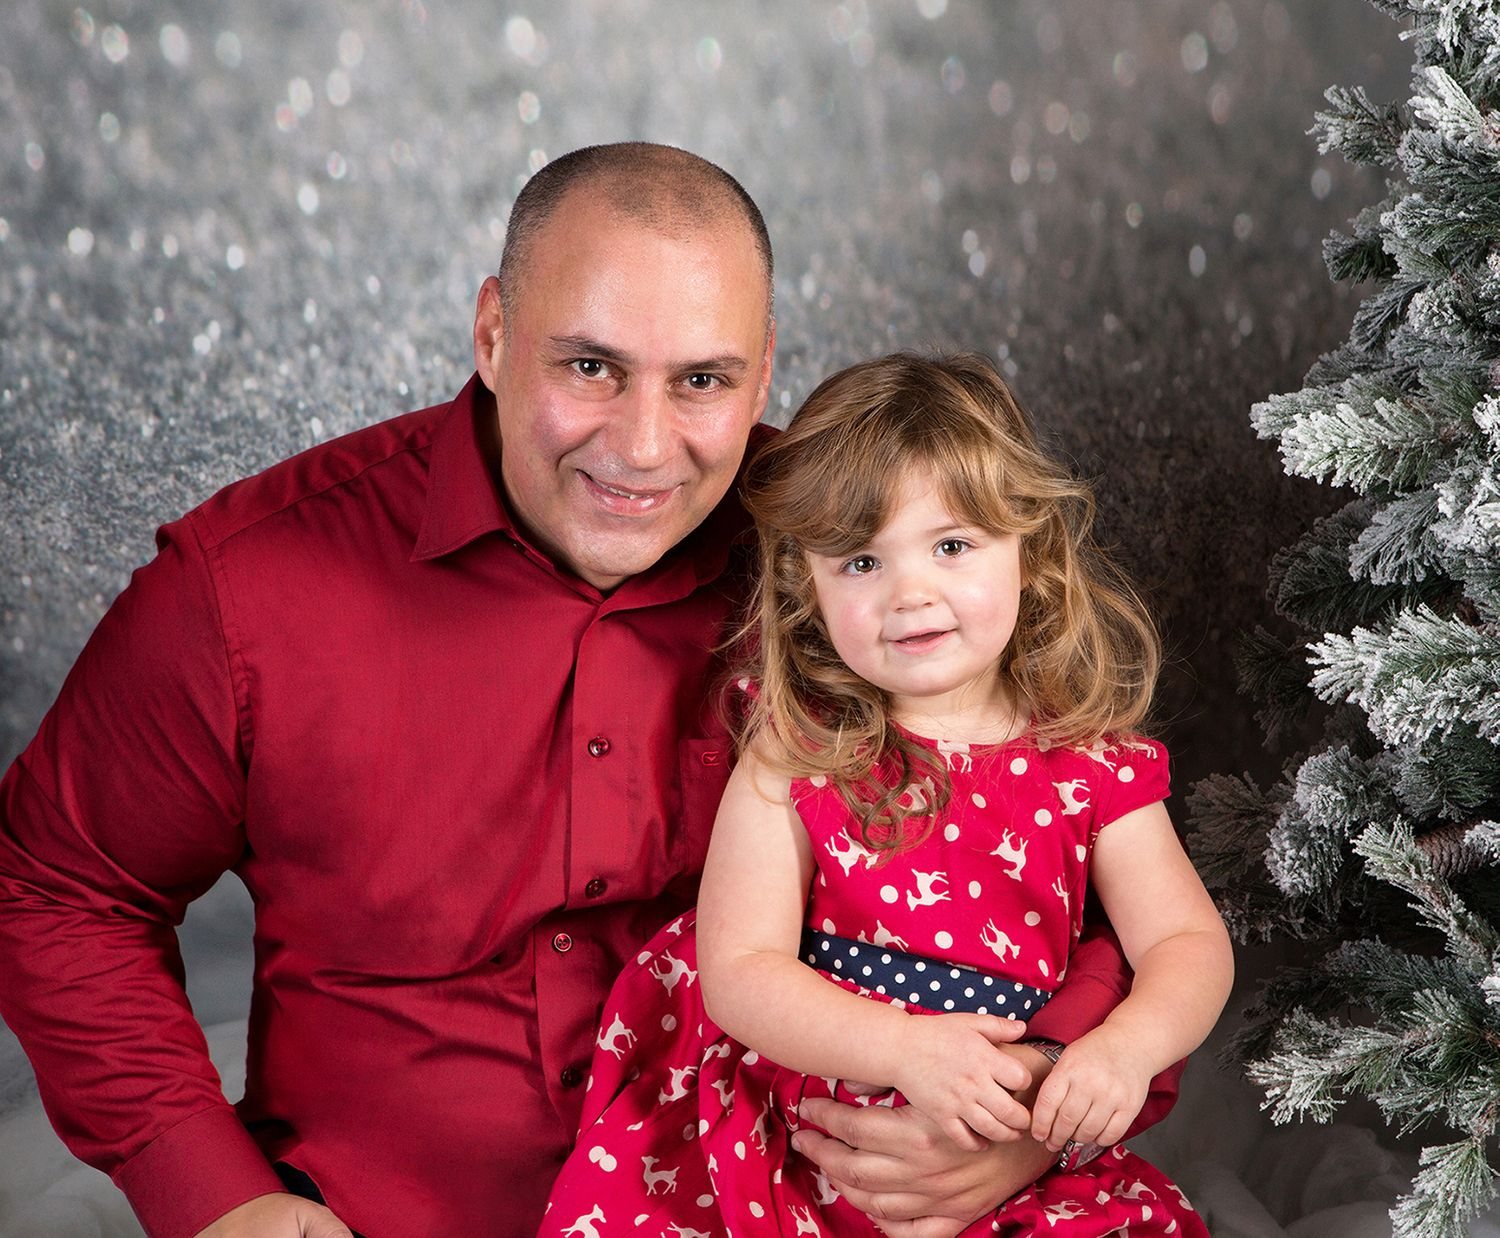 Festive self portrait of photographer Paul Baybut and his daughter against a silver bokeh backdrop and Christmas tree